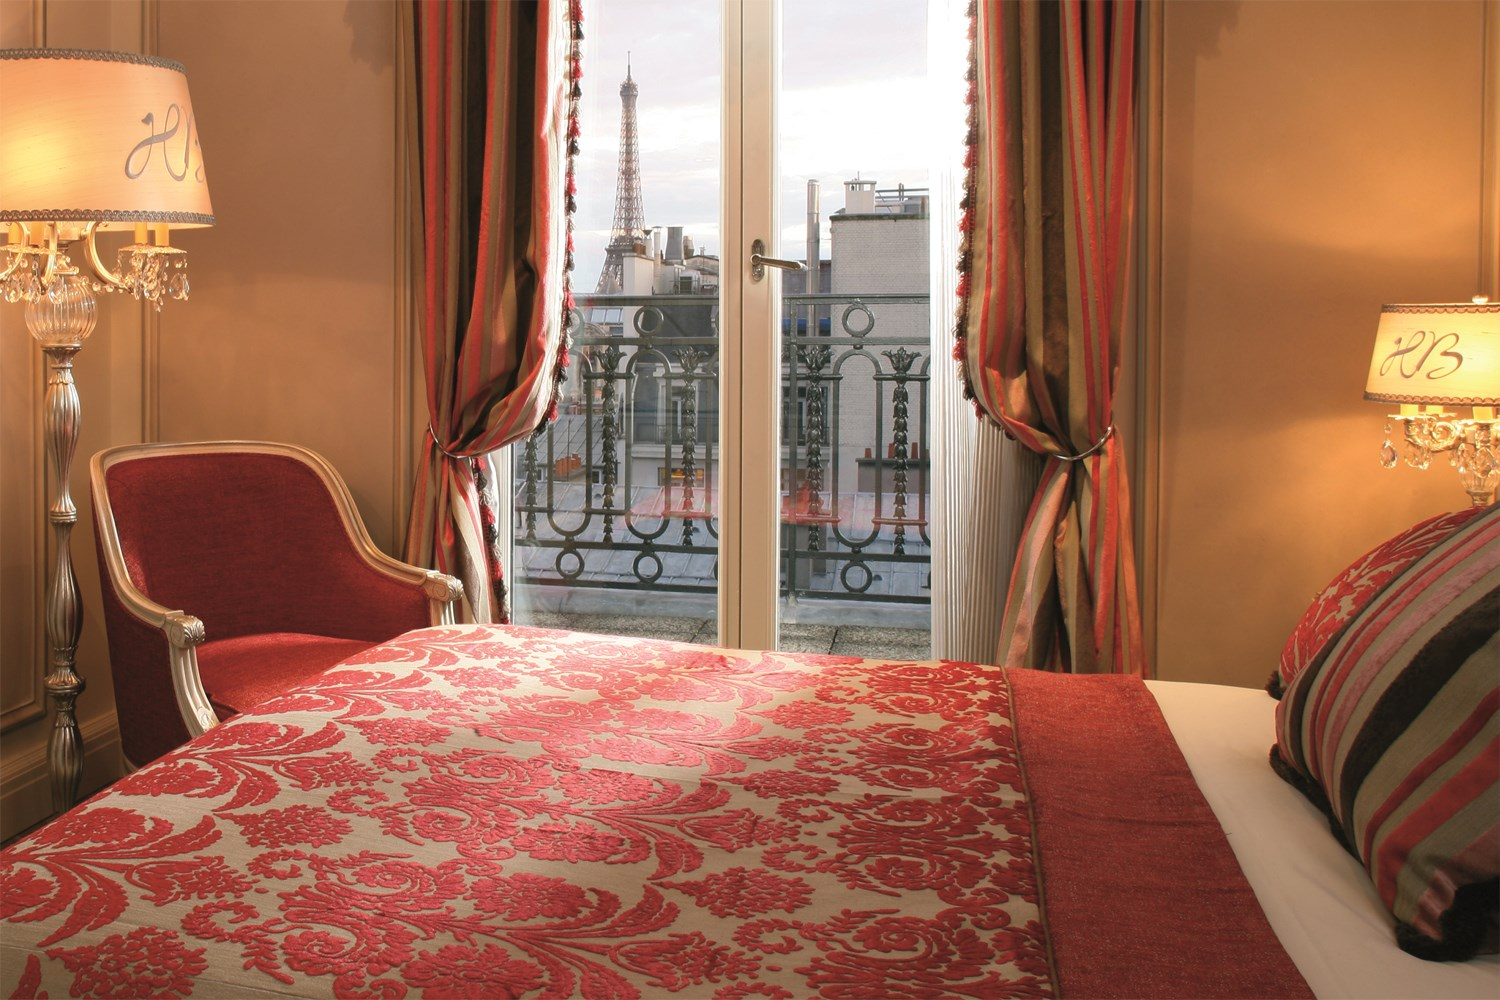 Photo Gallery Hotel Balzac Champs Elysees Paris